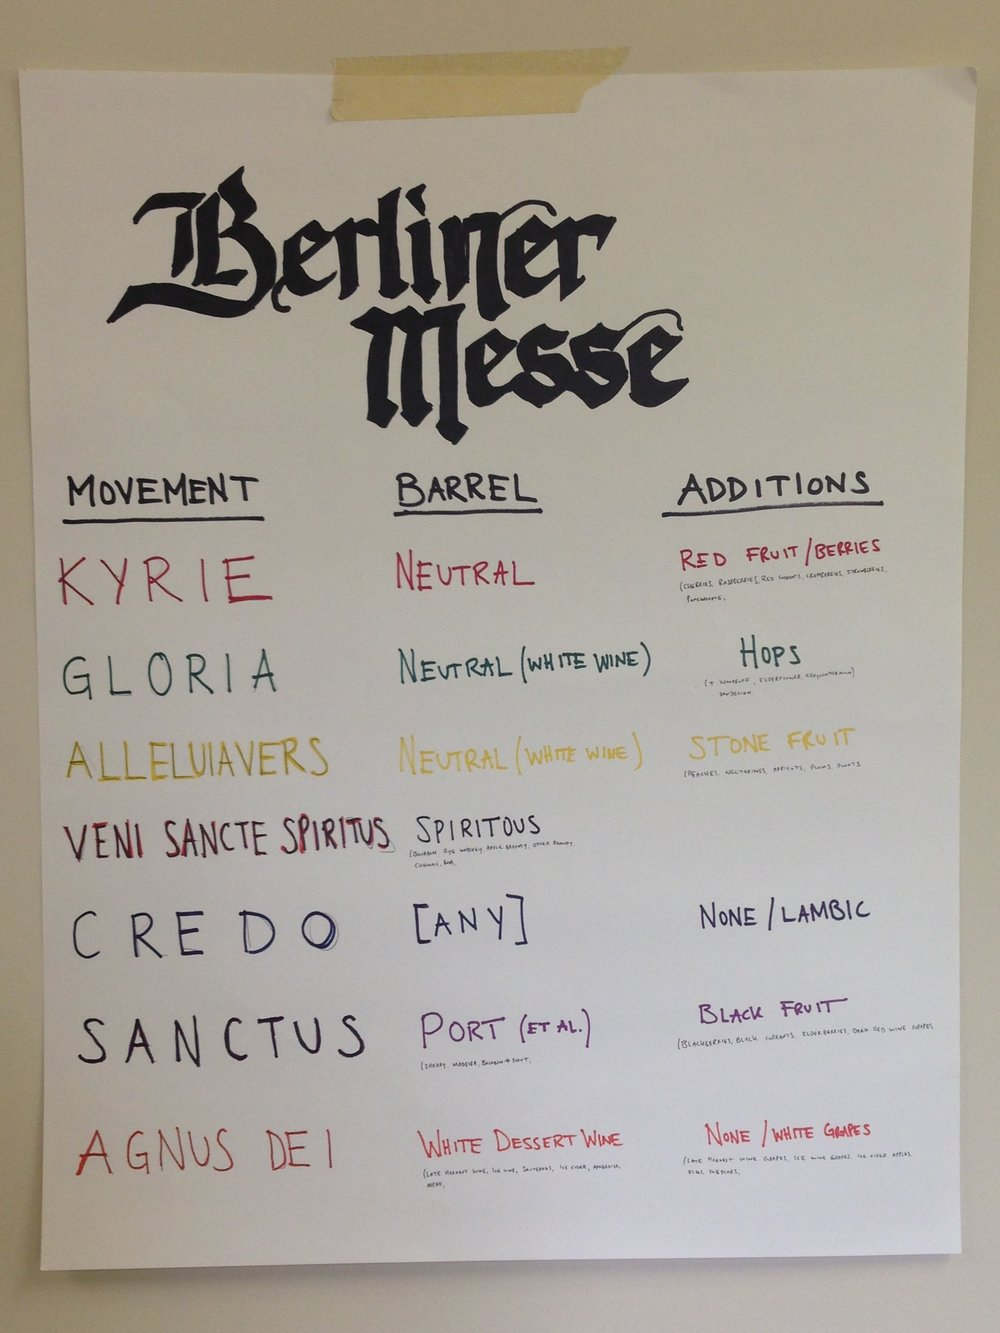 The loose framework around which the 7 Berliner Messe movements are crafted